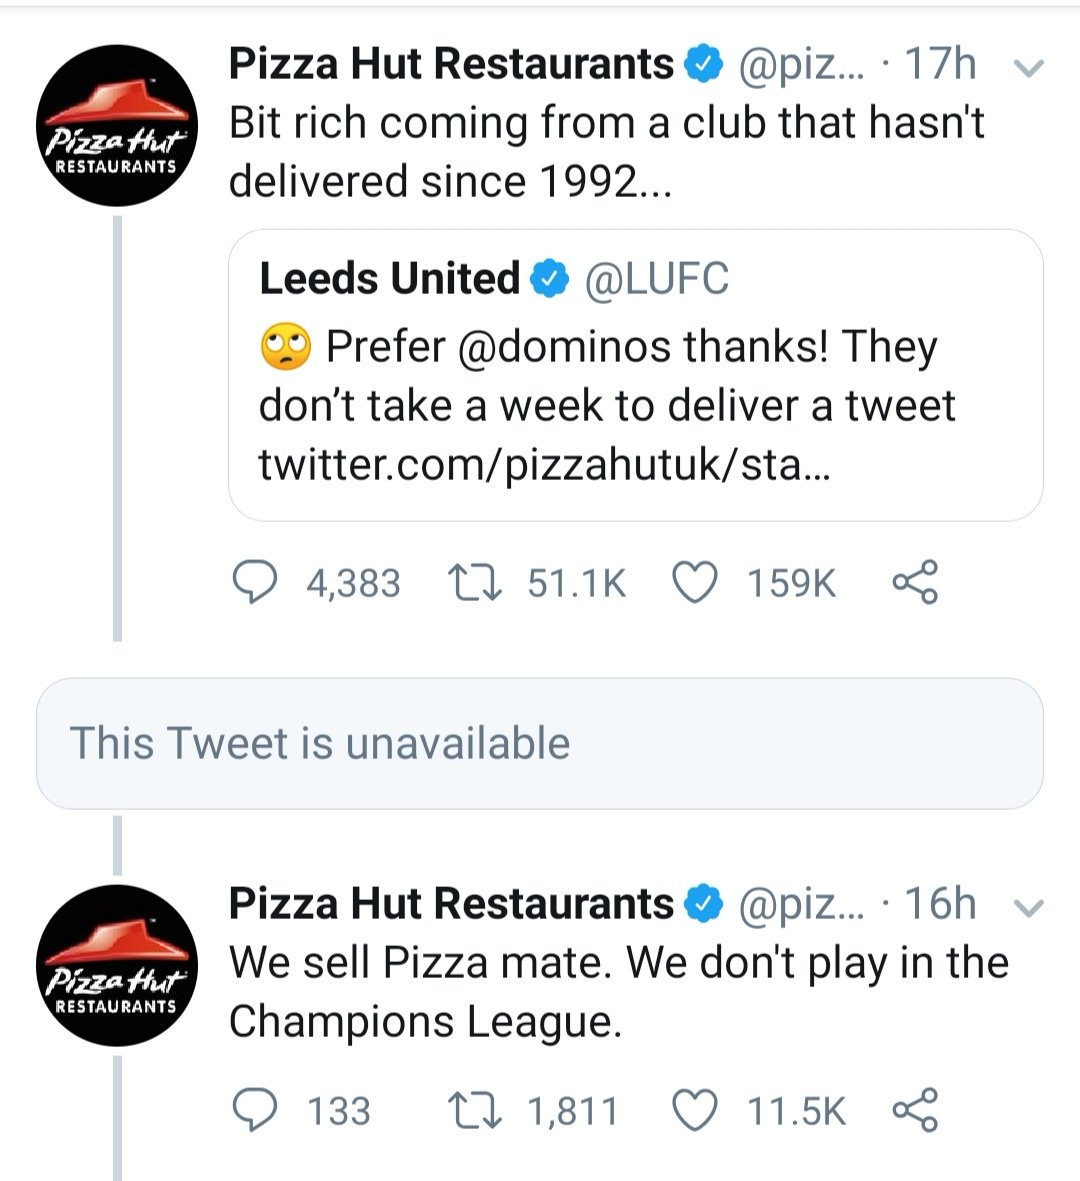 Pizza Hut Restaurants On Twitter We Sell Pizza Mate We